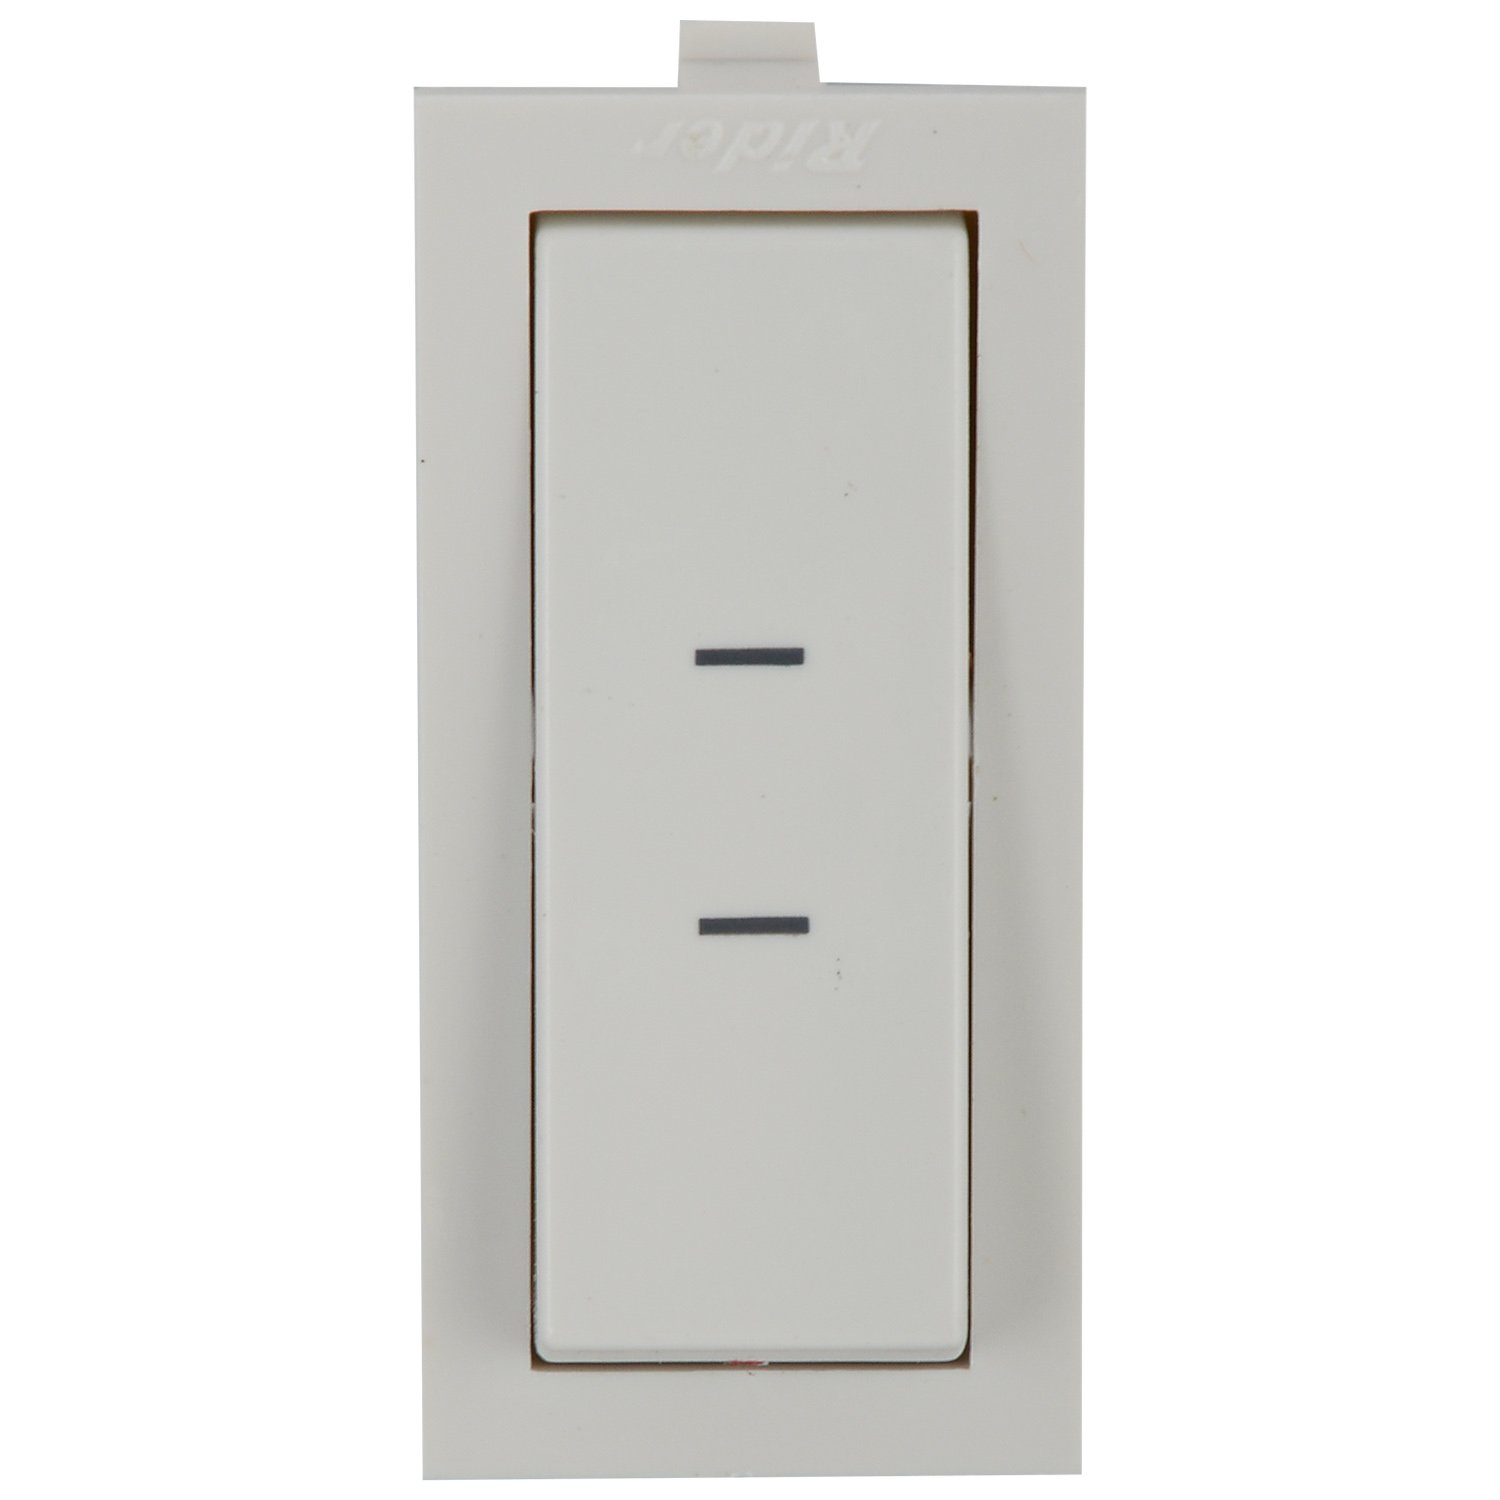 Anchor Rider 2 Way Switch Slim 47162 , White, 16A 240V: Amazon.in ...